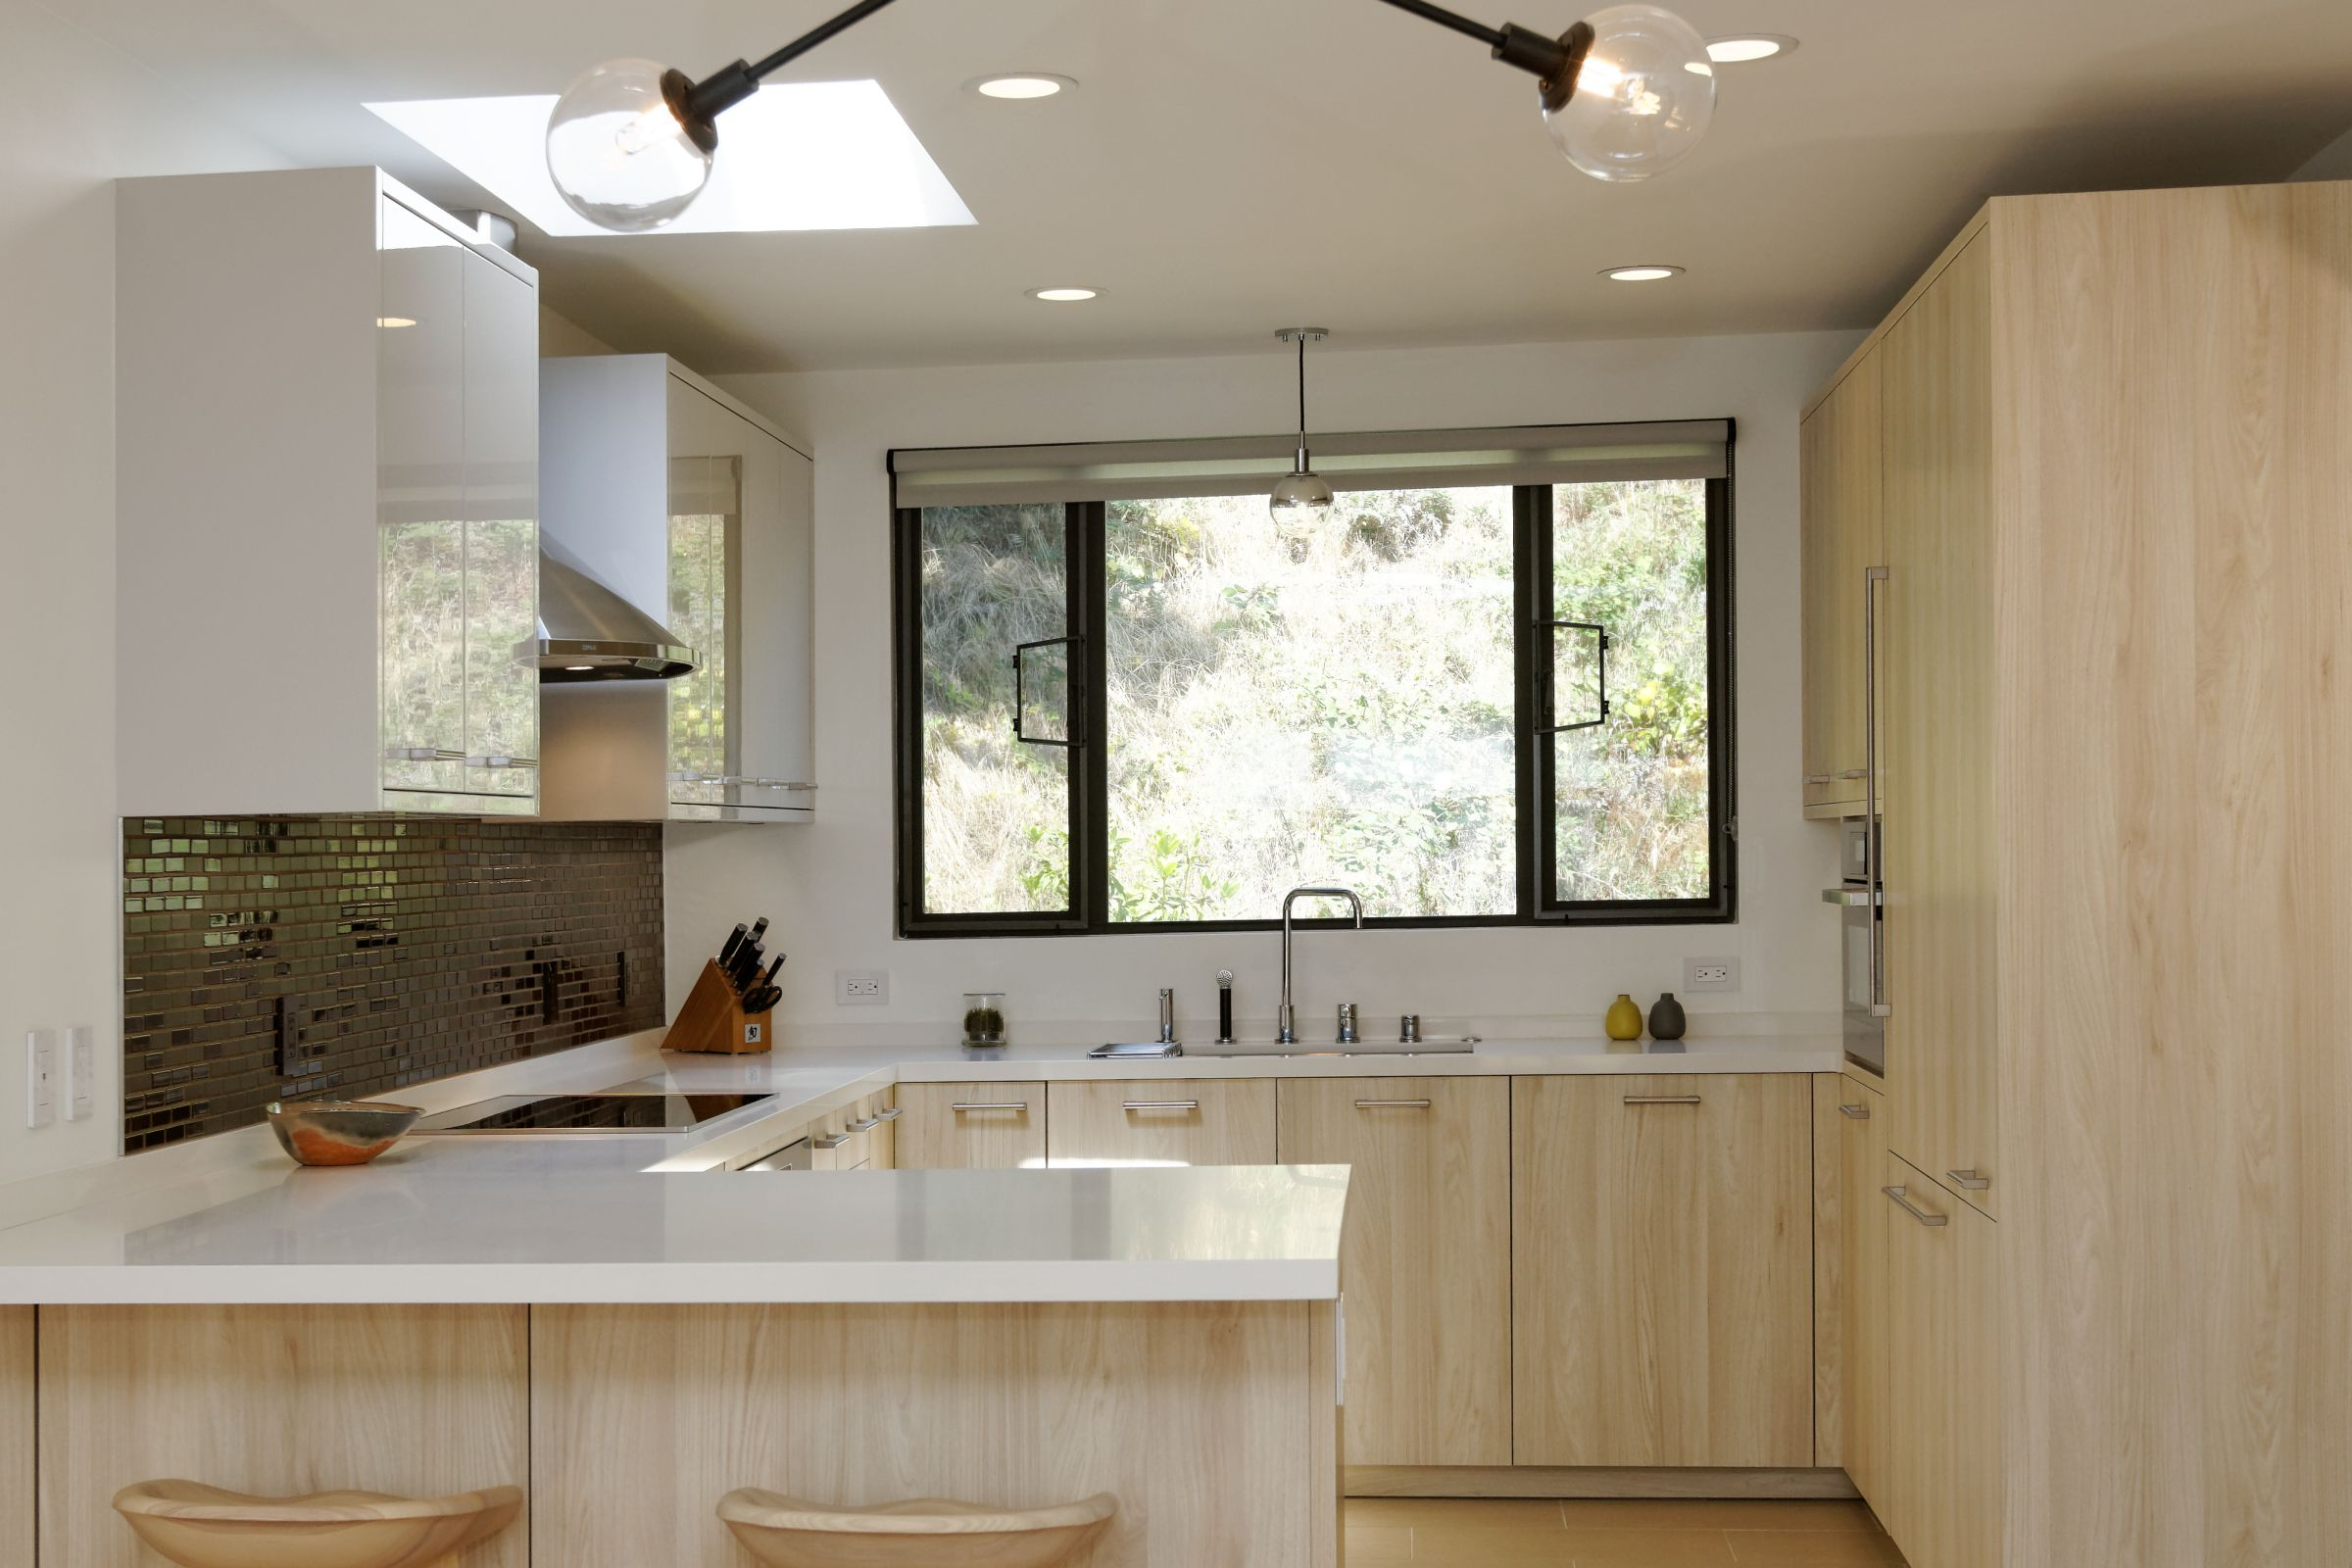 A mix of grain-matched light wood laminate and lacquer gives this kitchen a sophisticated enlightened appeal.